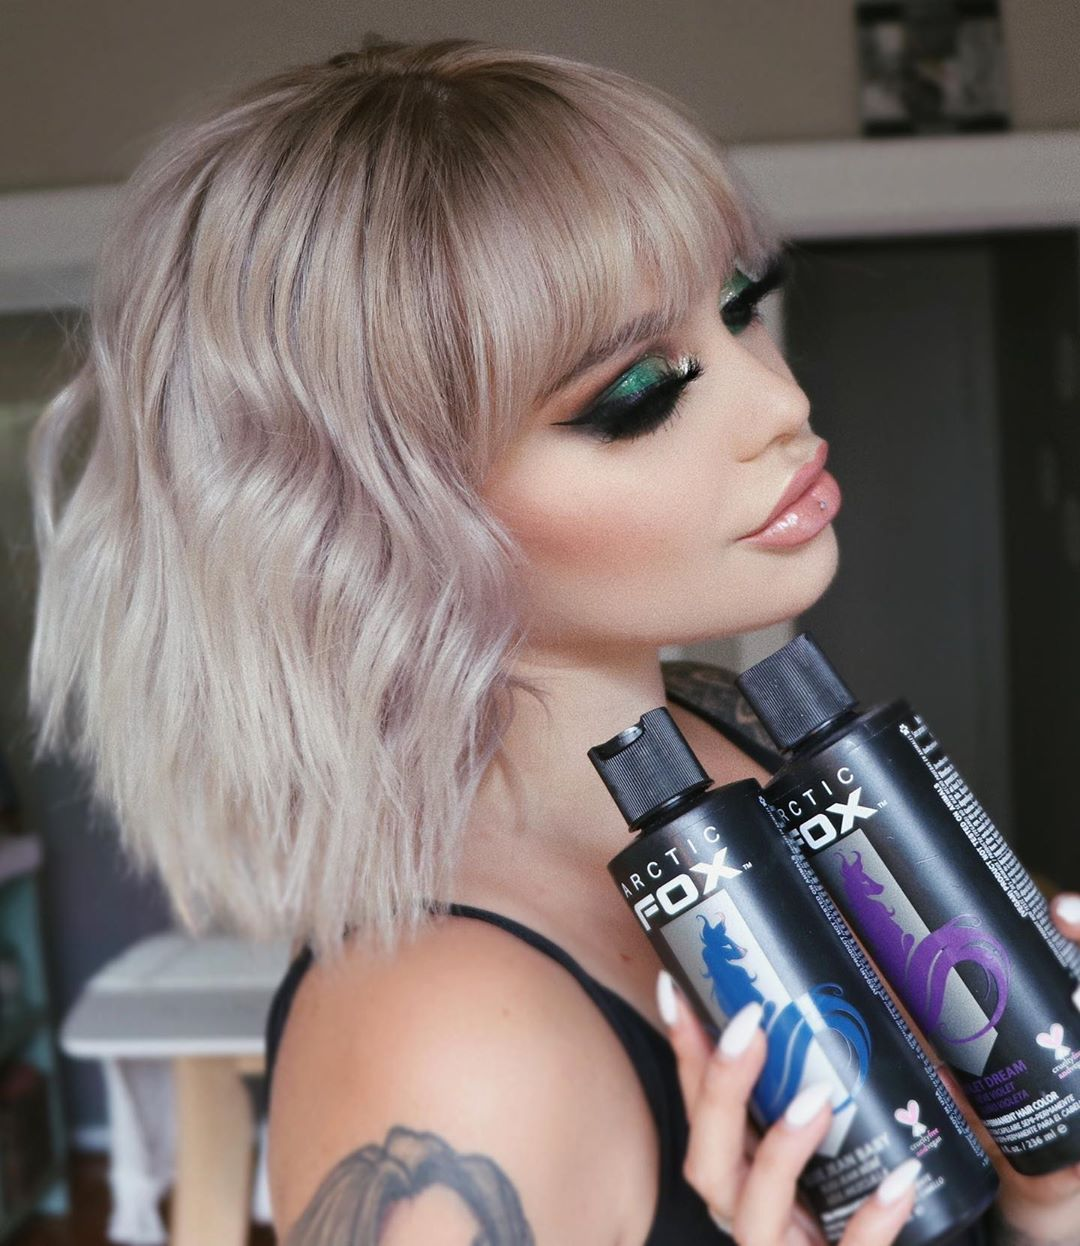 Arctic fox hair color taylorsteingold make your own toner